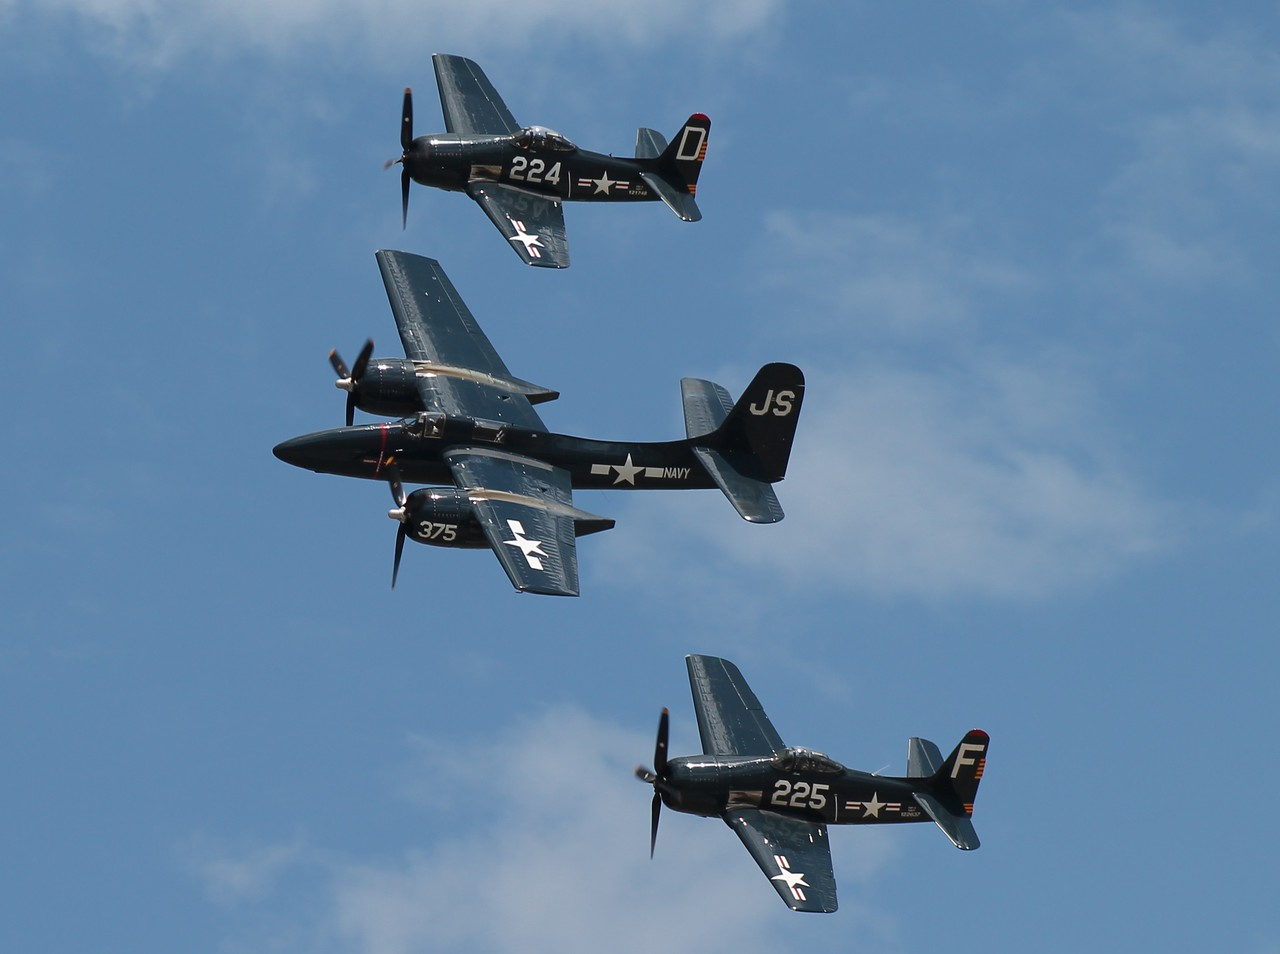 Two F8F Bearcats and an F7F Tigercat.